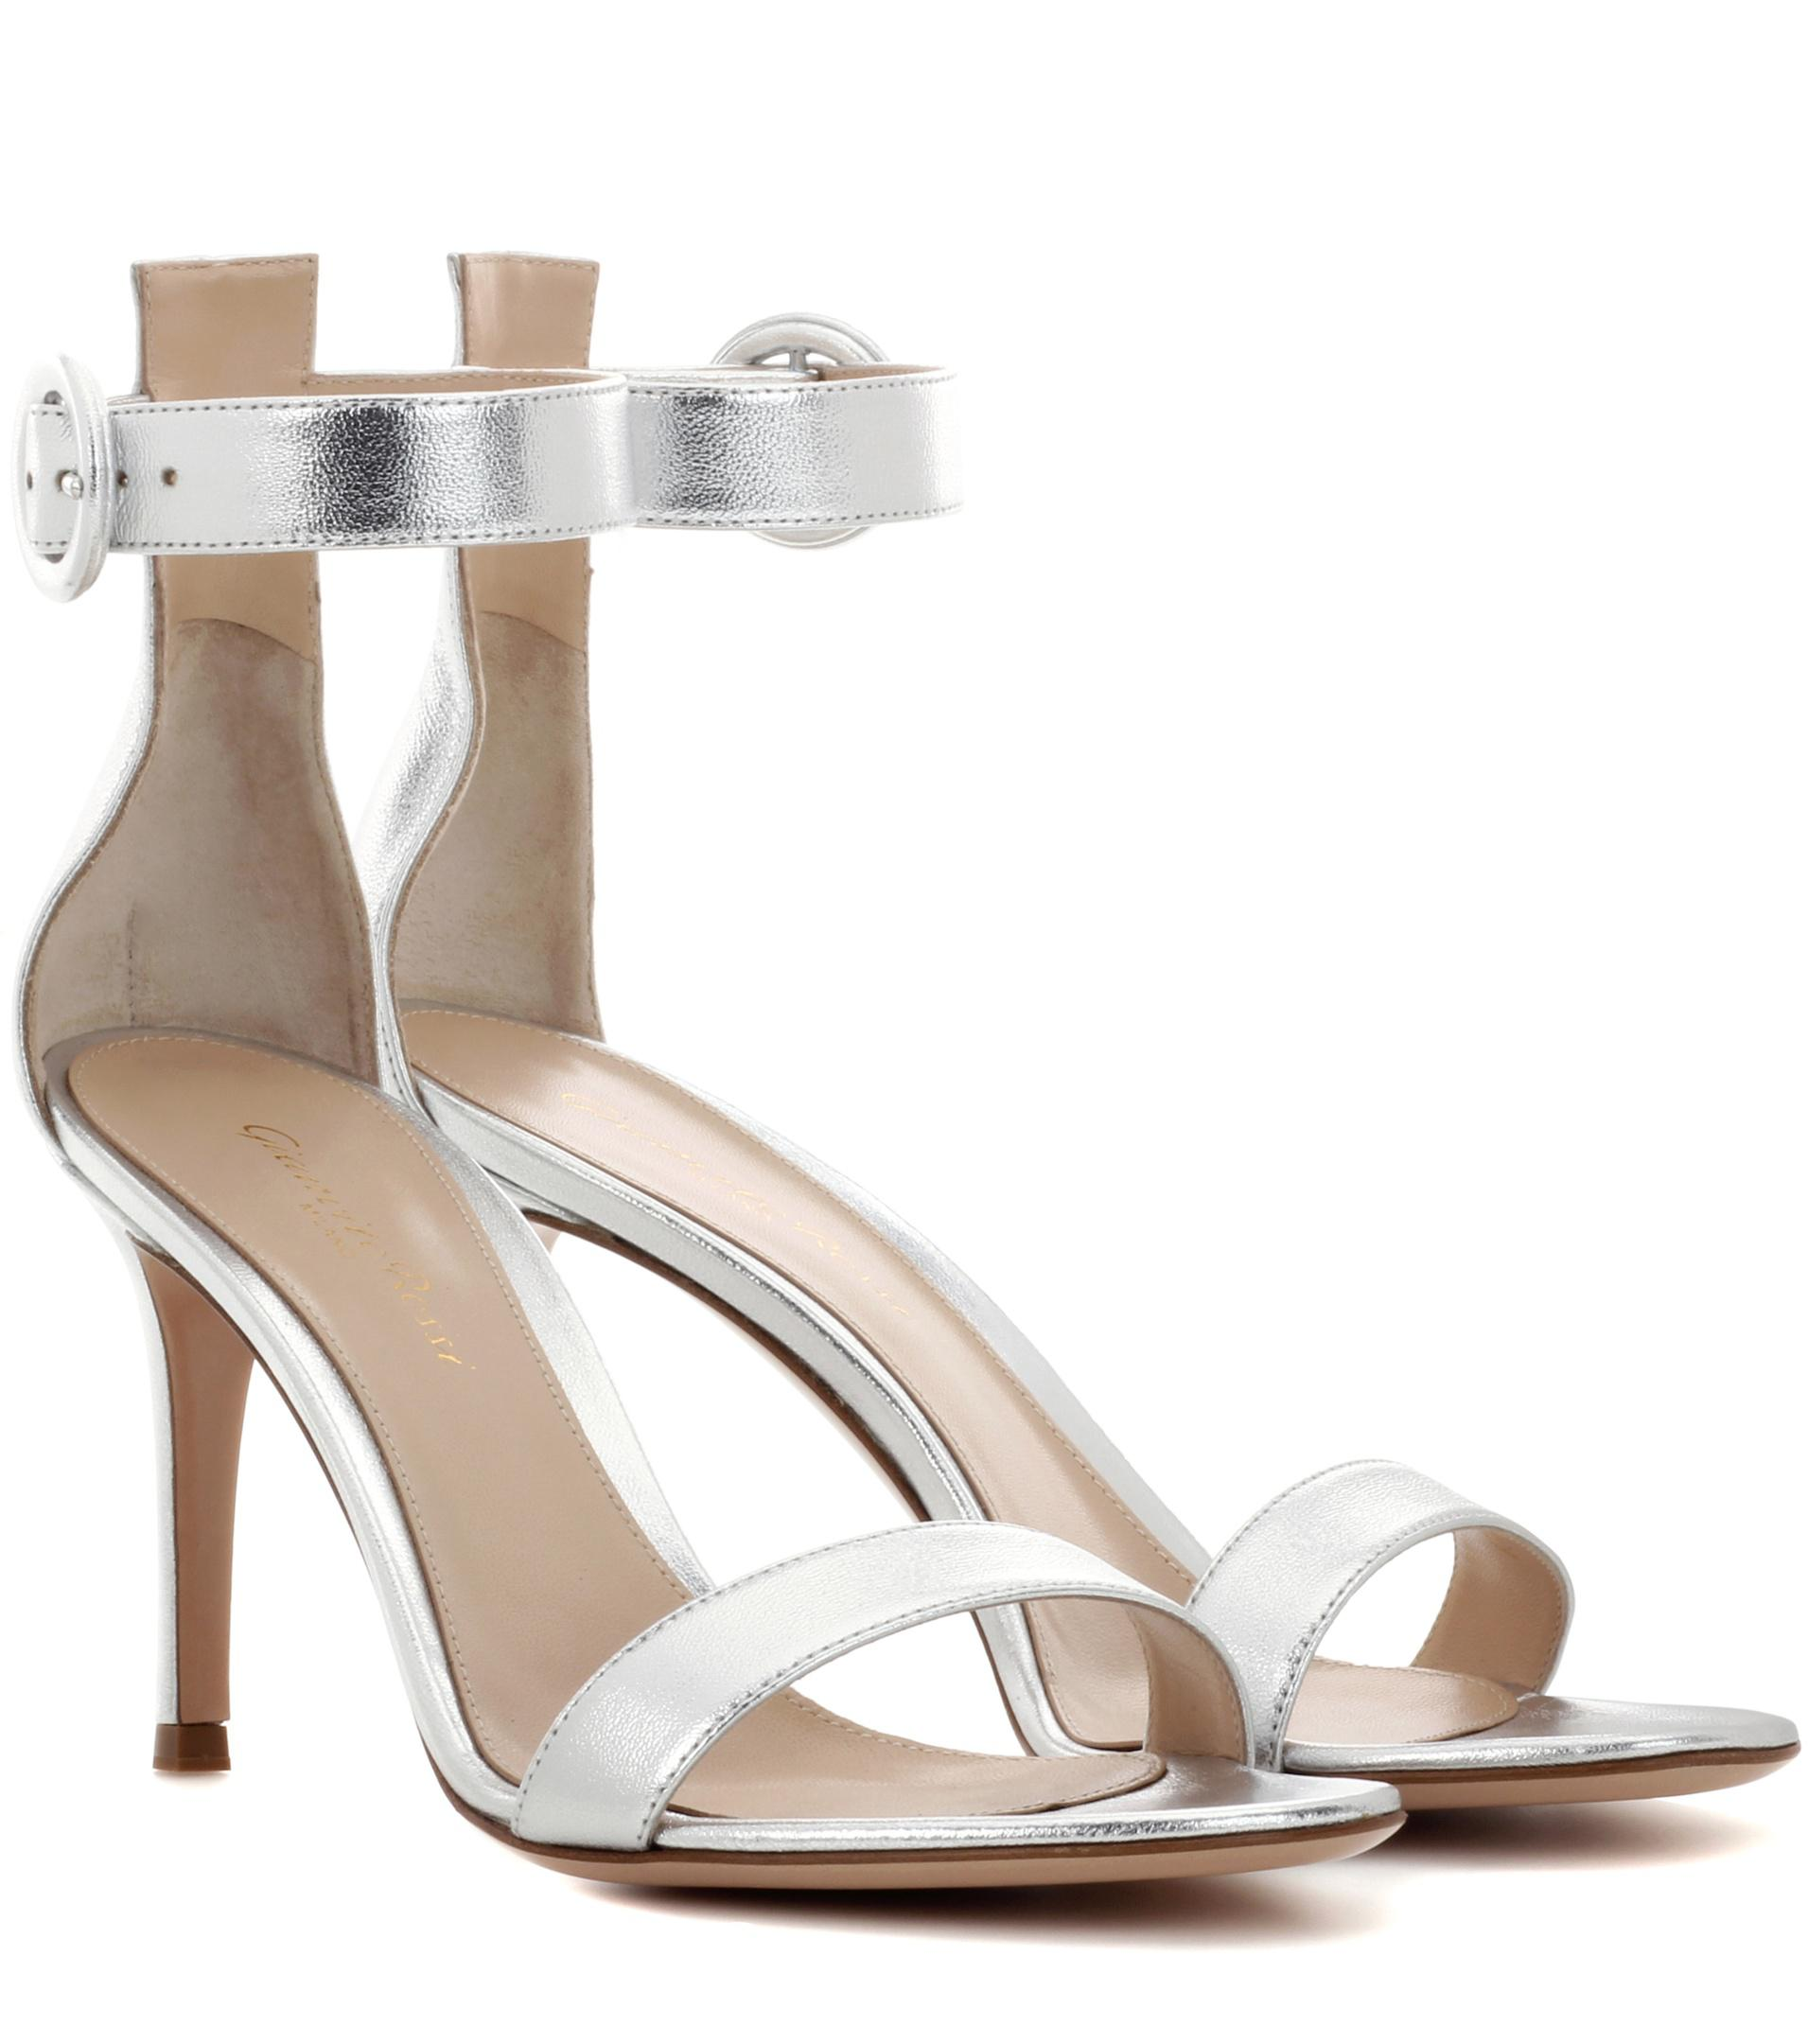 cheap 100% authentic free shipping websites Gianvito Rossi Canvas Ankle Strap Sandals browse cheap price new arrival online outlet 2015 ubuJWGIqVD